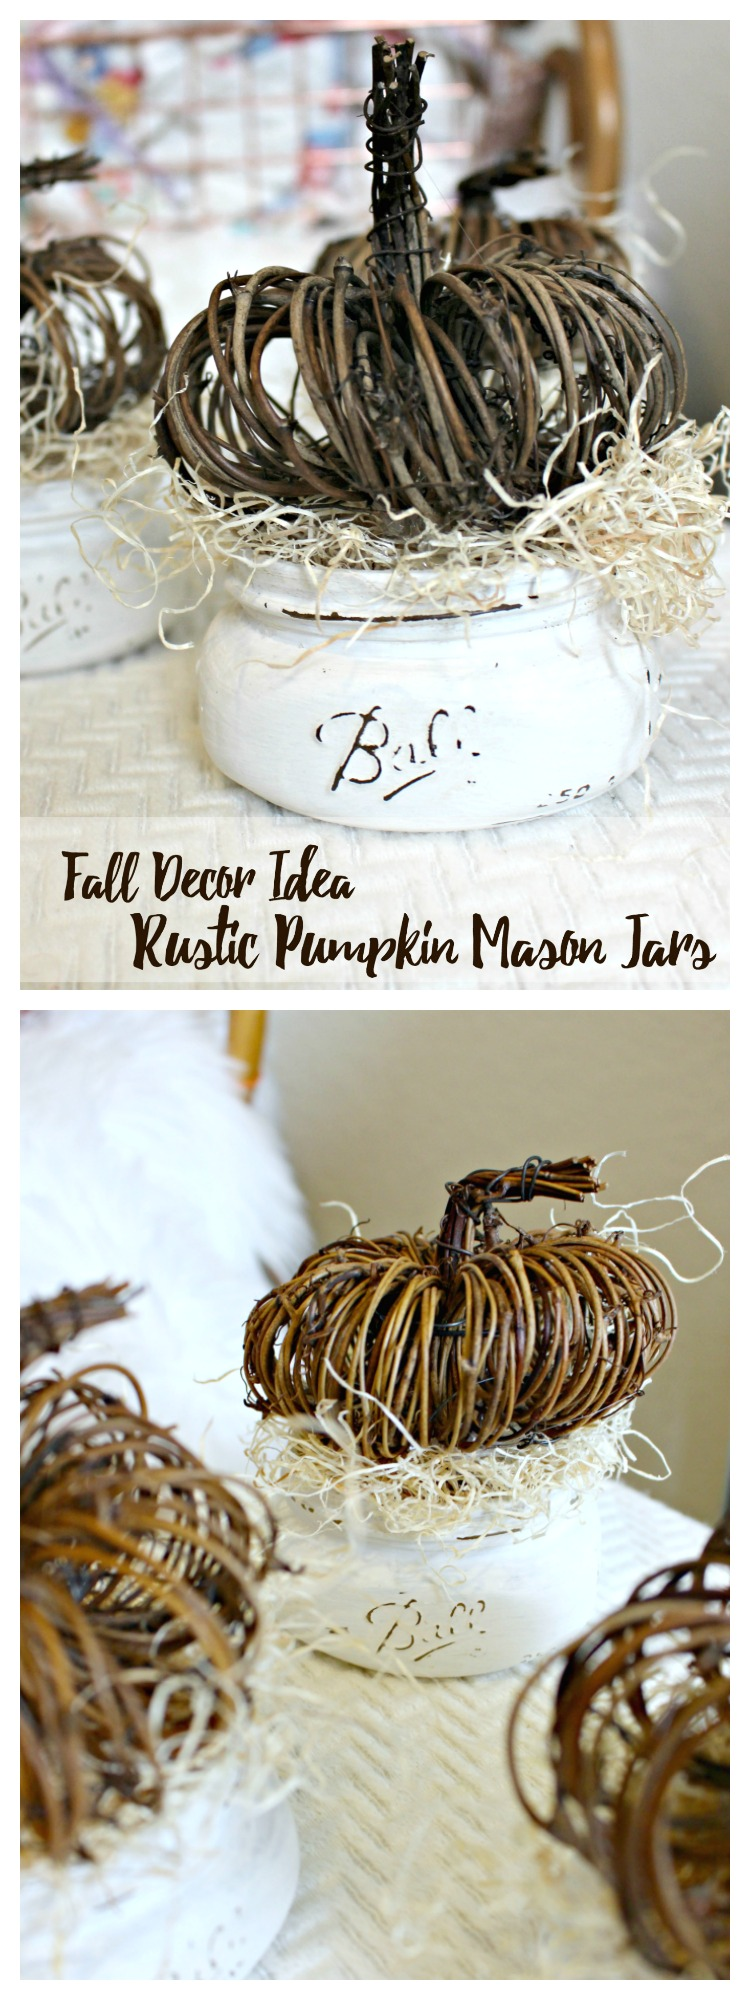 Need a Simple Centerpiece? Try This DIY Fall Decor Idea- Rustic Pumpkin Mason Jars!